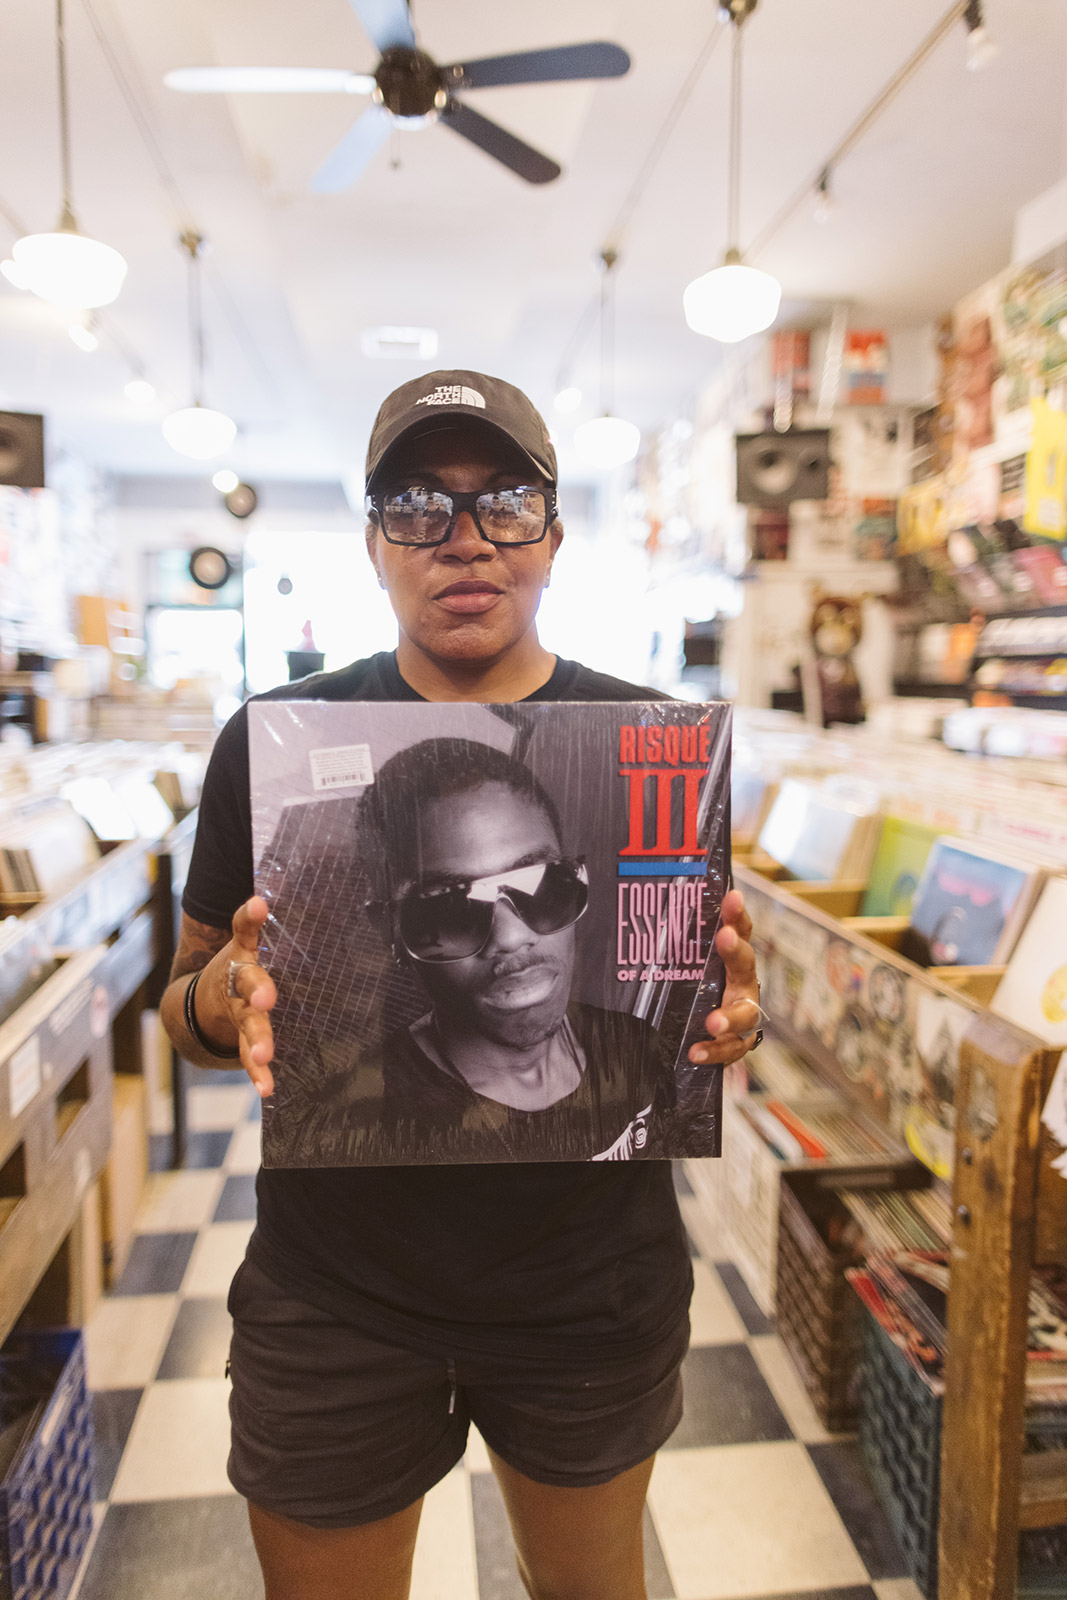 DJ Heather selects 6 records that capture the essence of Chicago